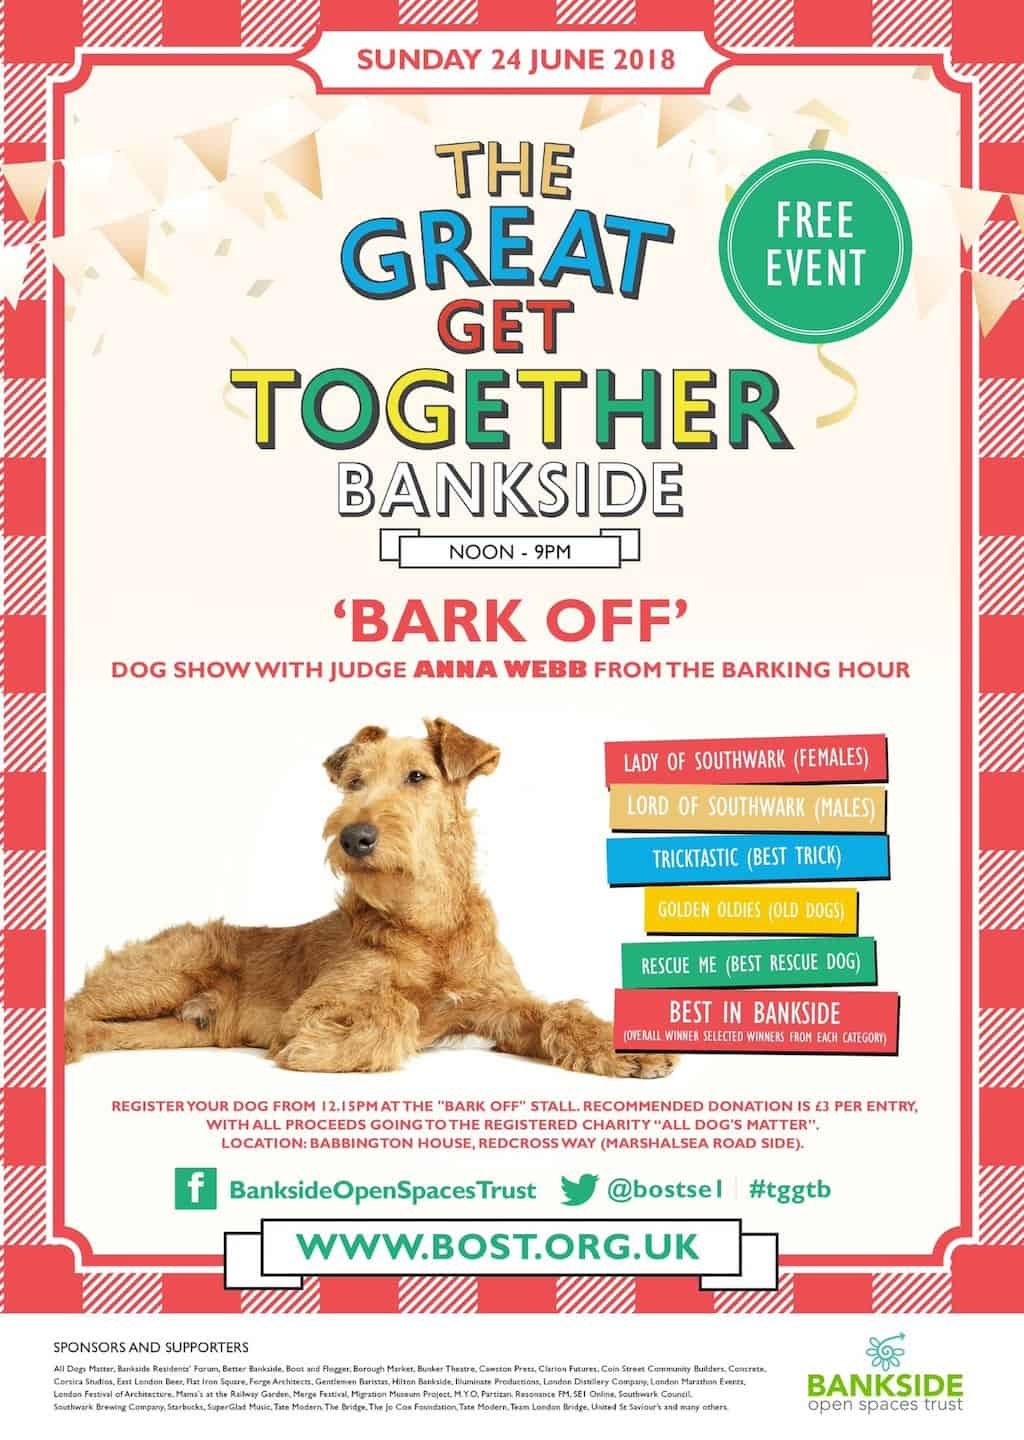 London Dog Shows - The Great Get Together Bark Off Dog Show